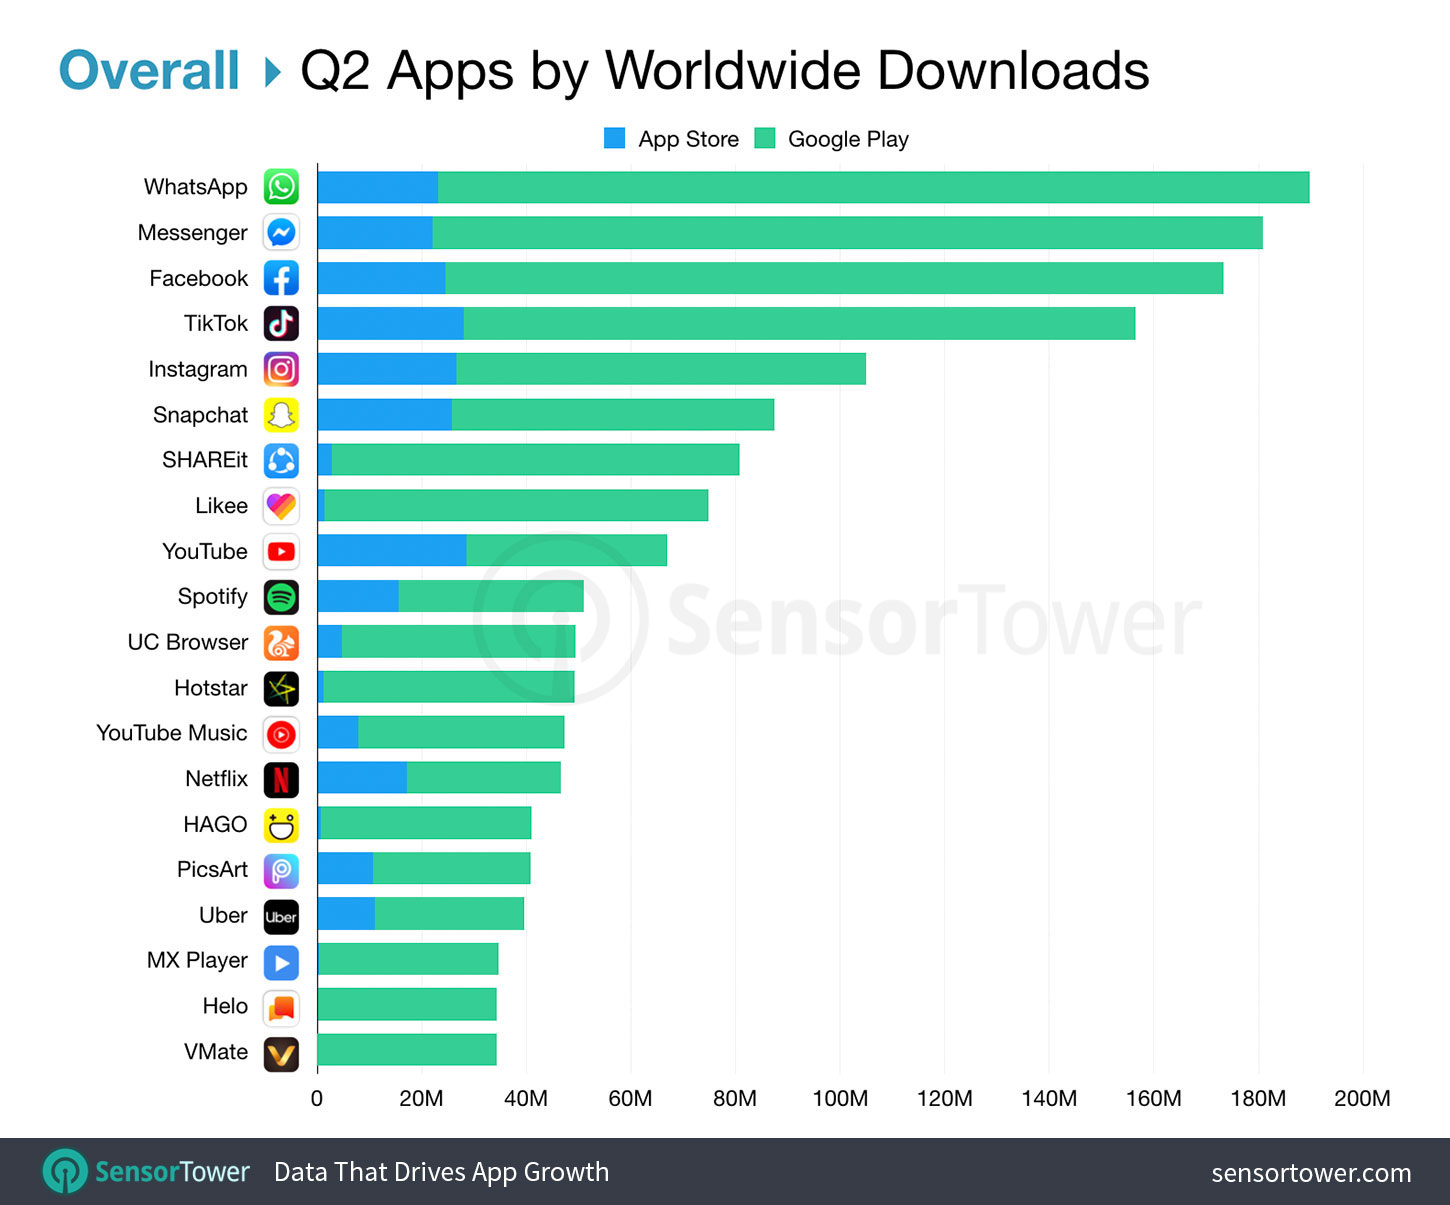 Top Apps Worldwide Overall for Q2 2019